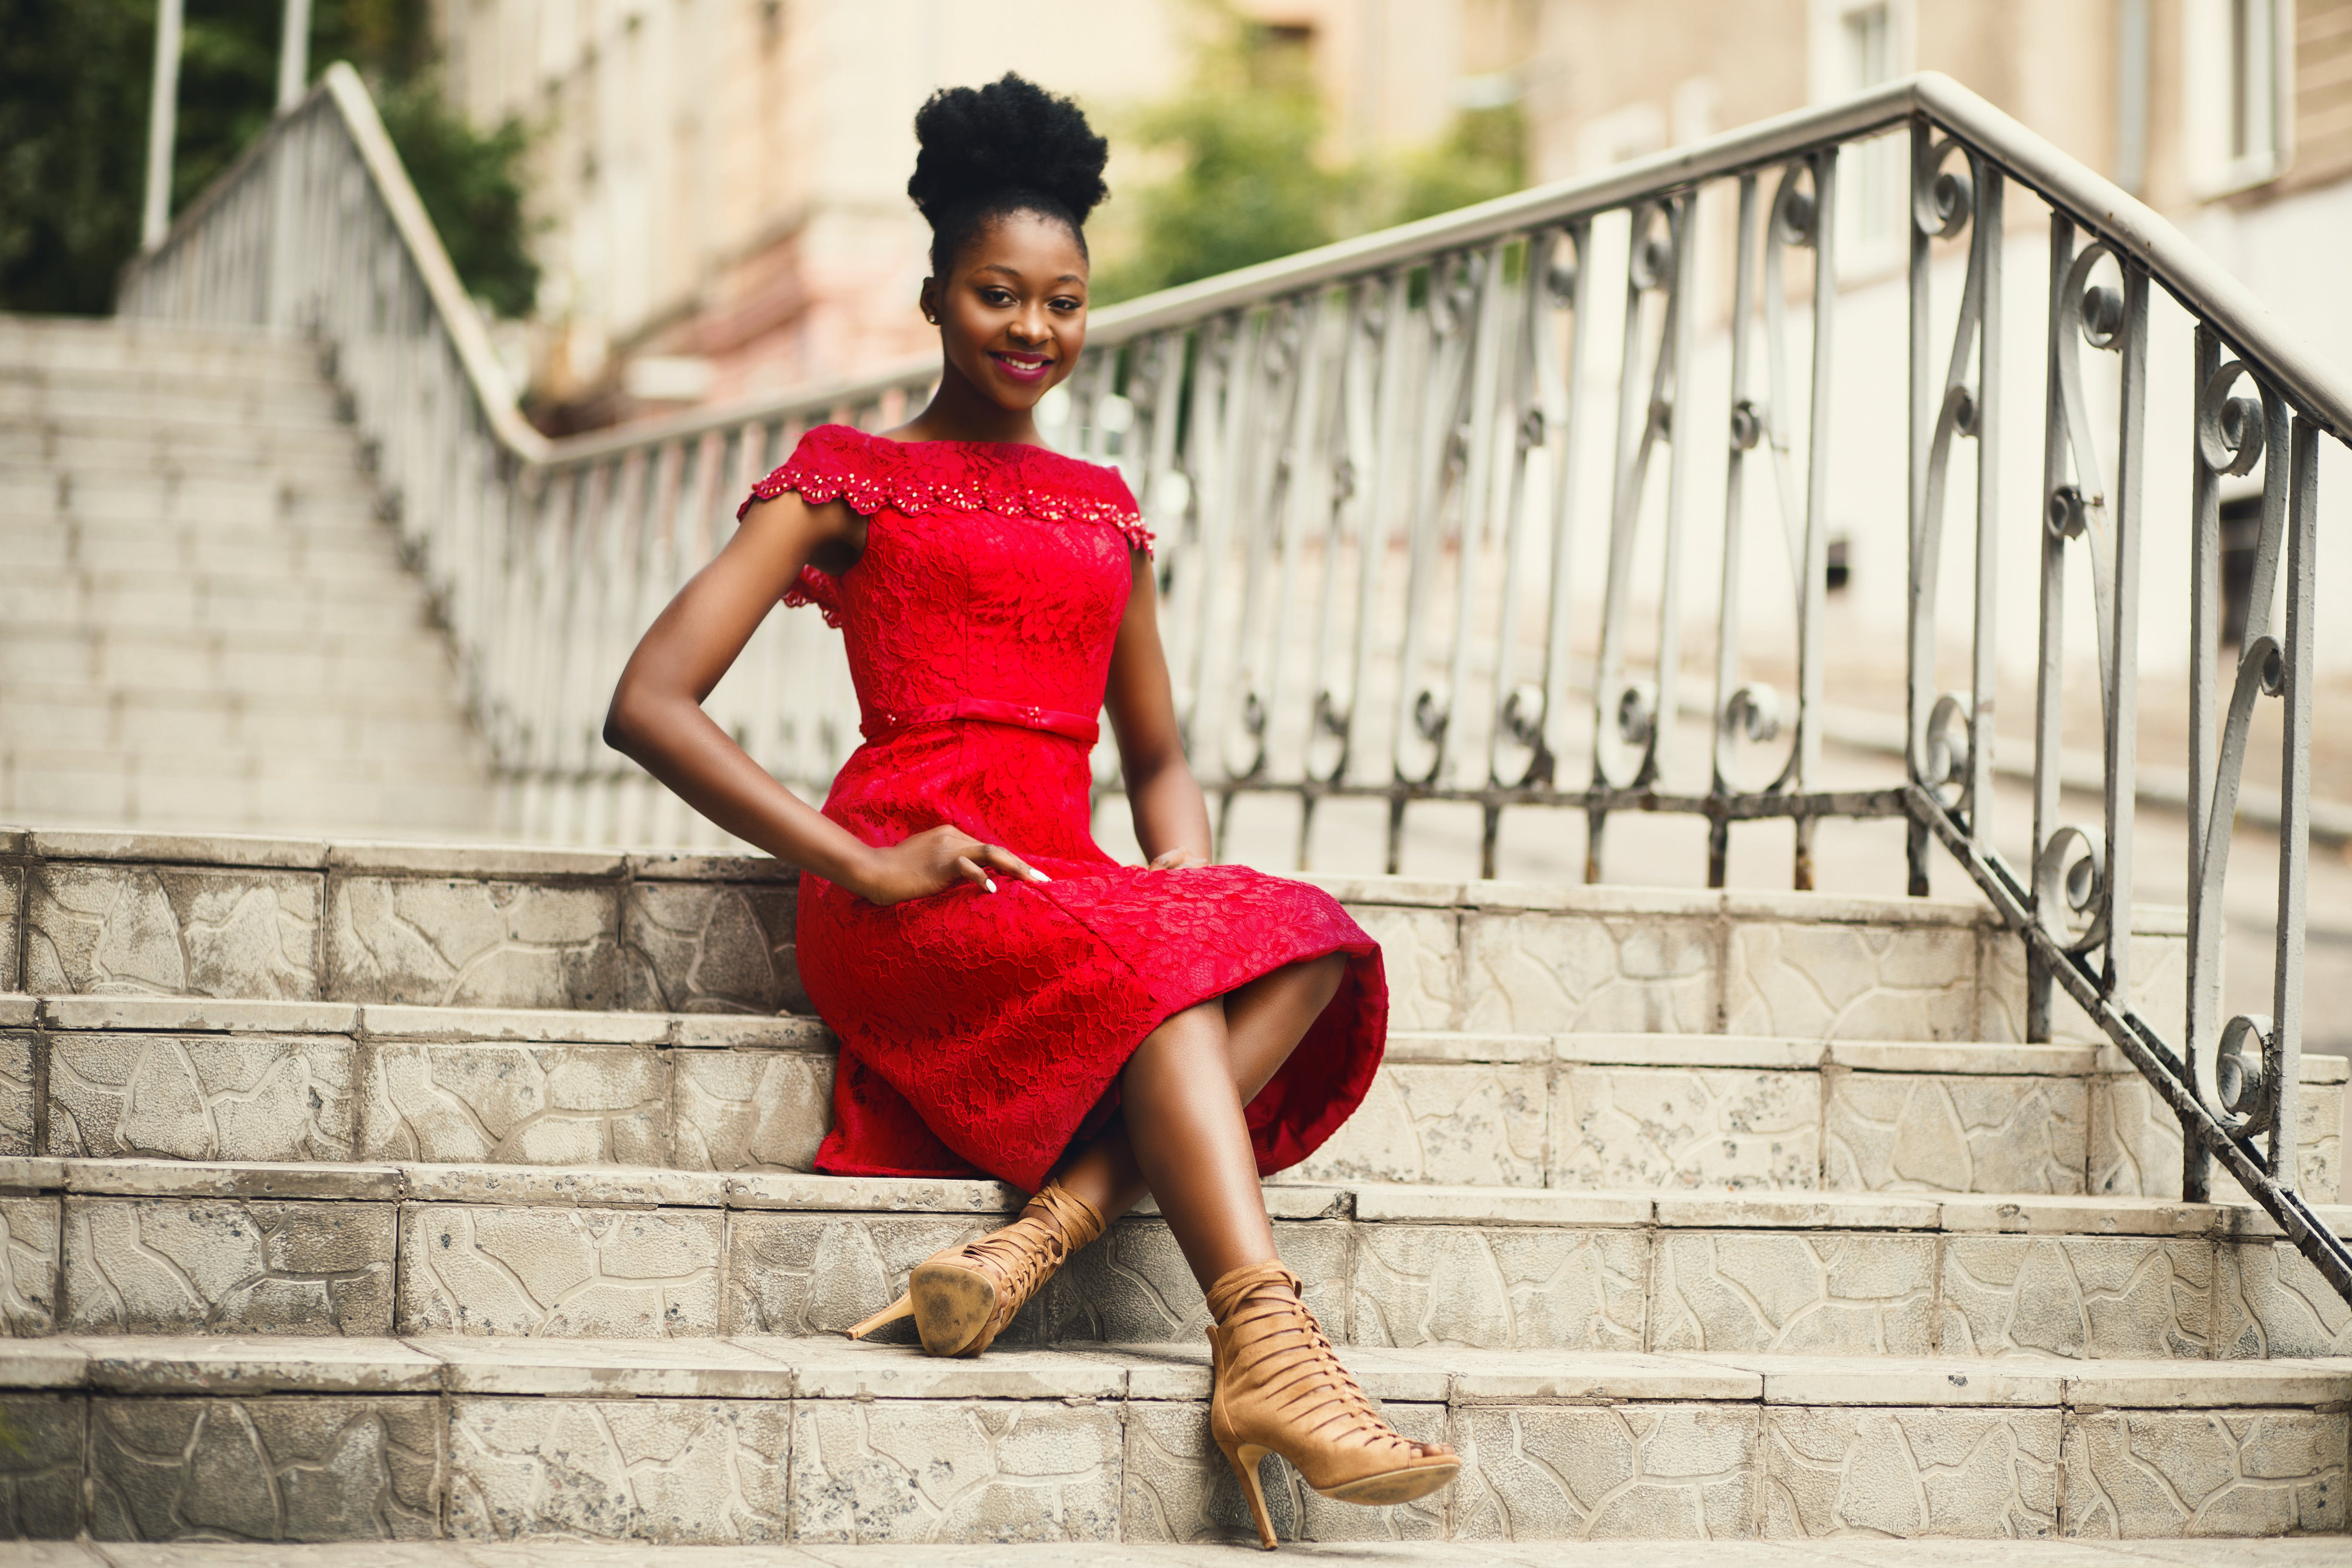 Woman in Red Off-shoulder Dress With Brown Leather High Heeled Gladiator Sandals on Brown Stairs